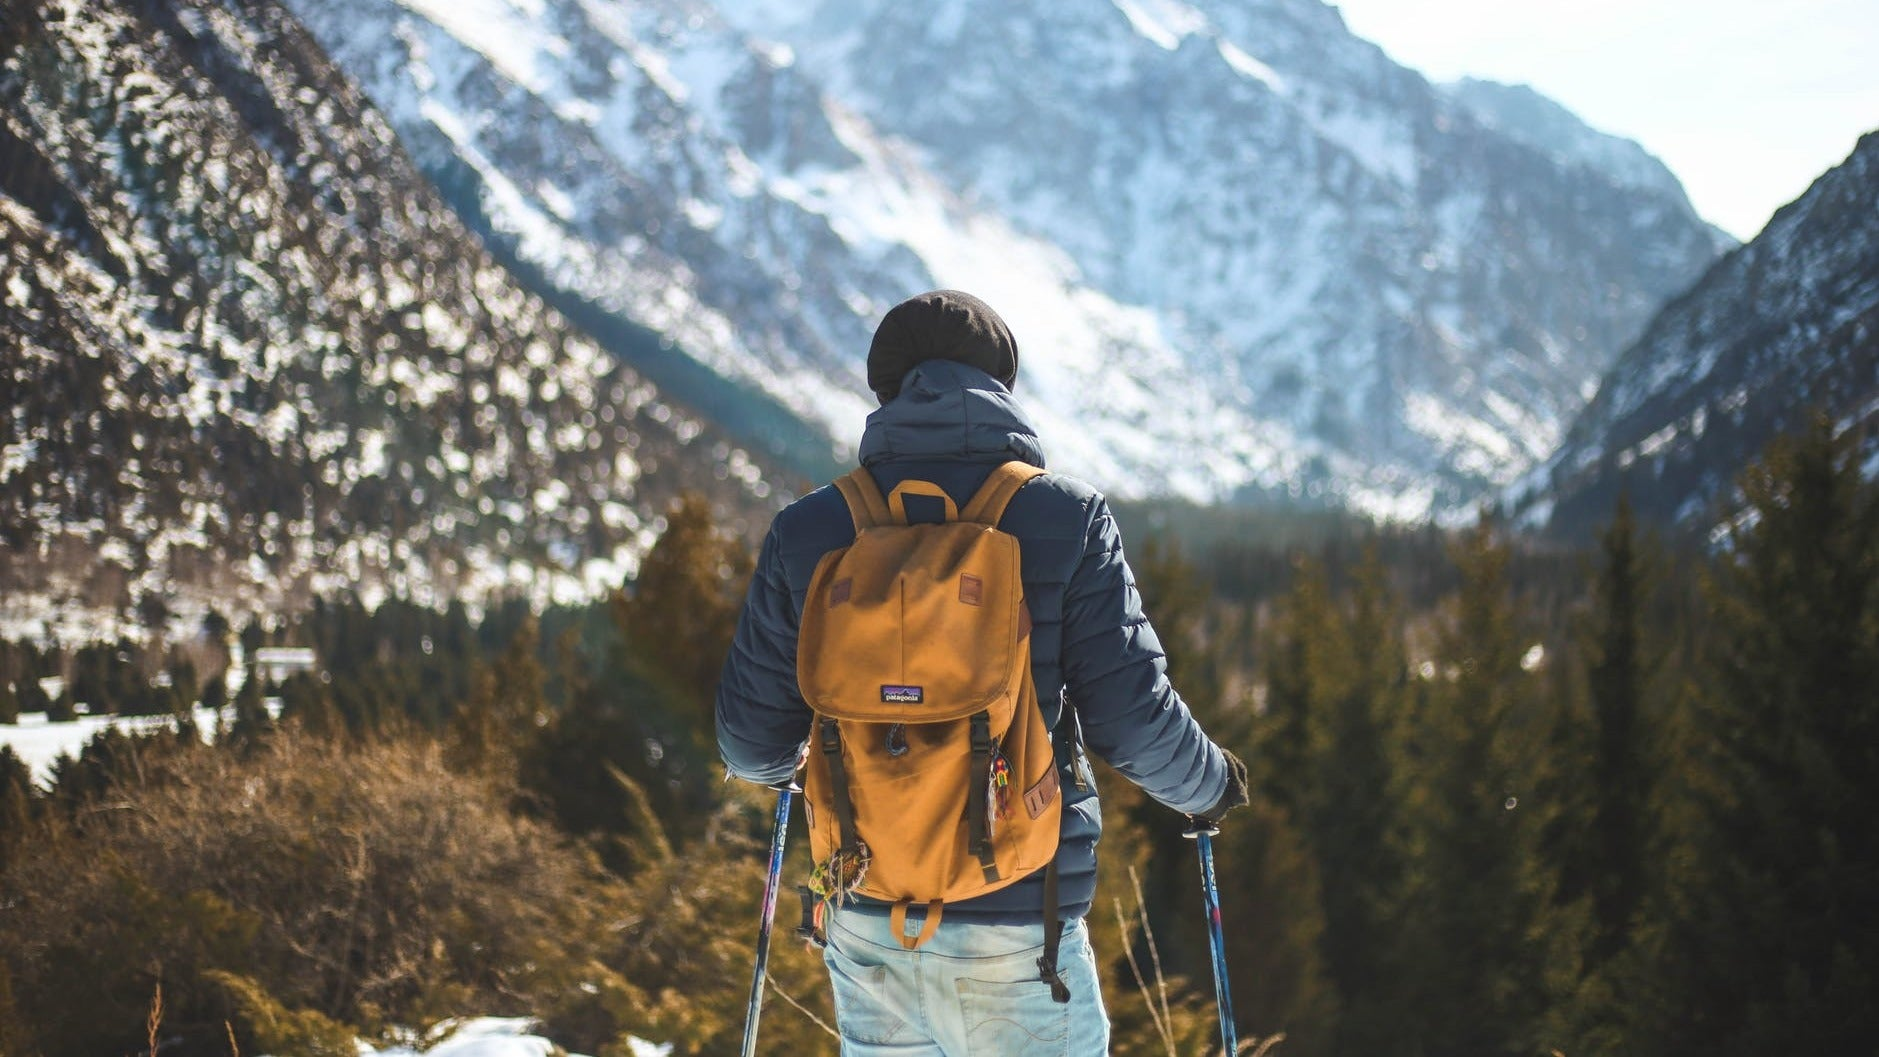 Discover New Hiking Trails With This App